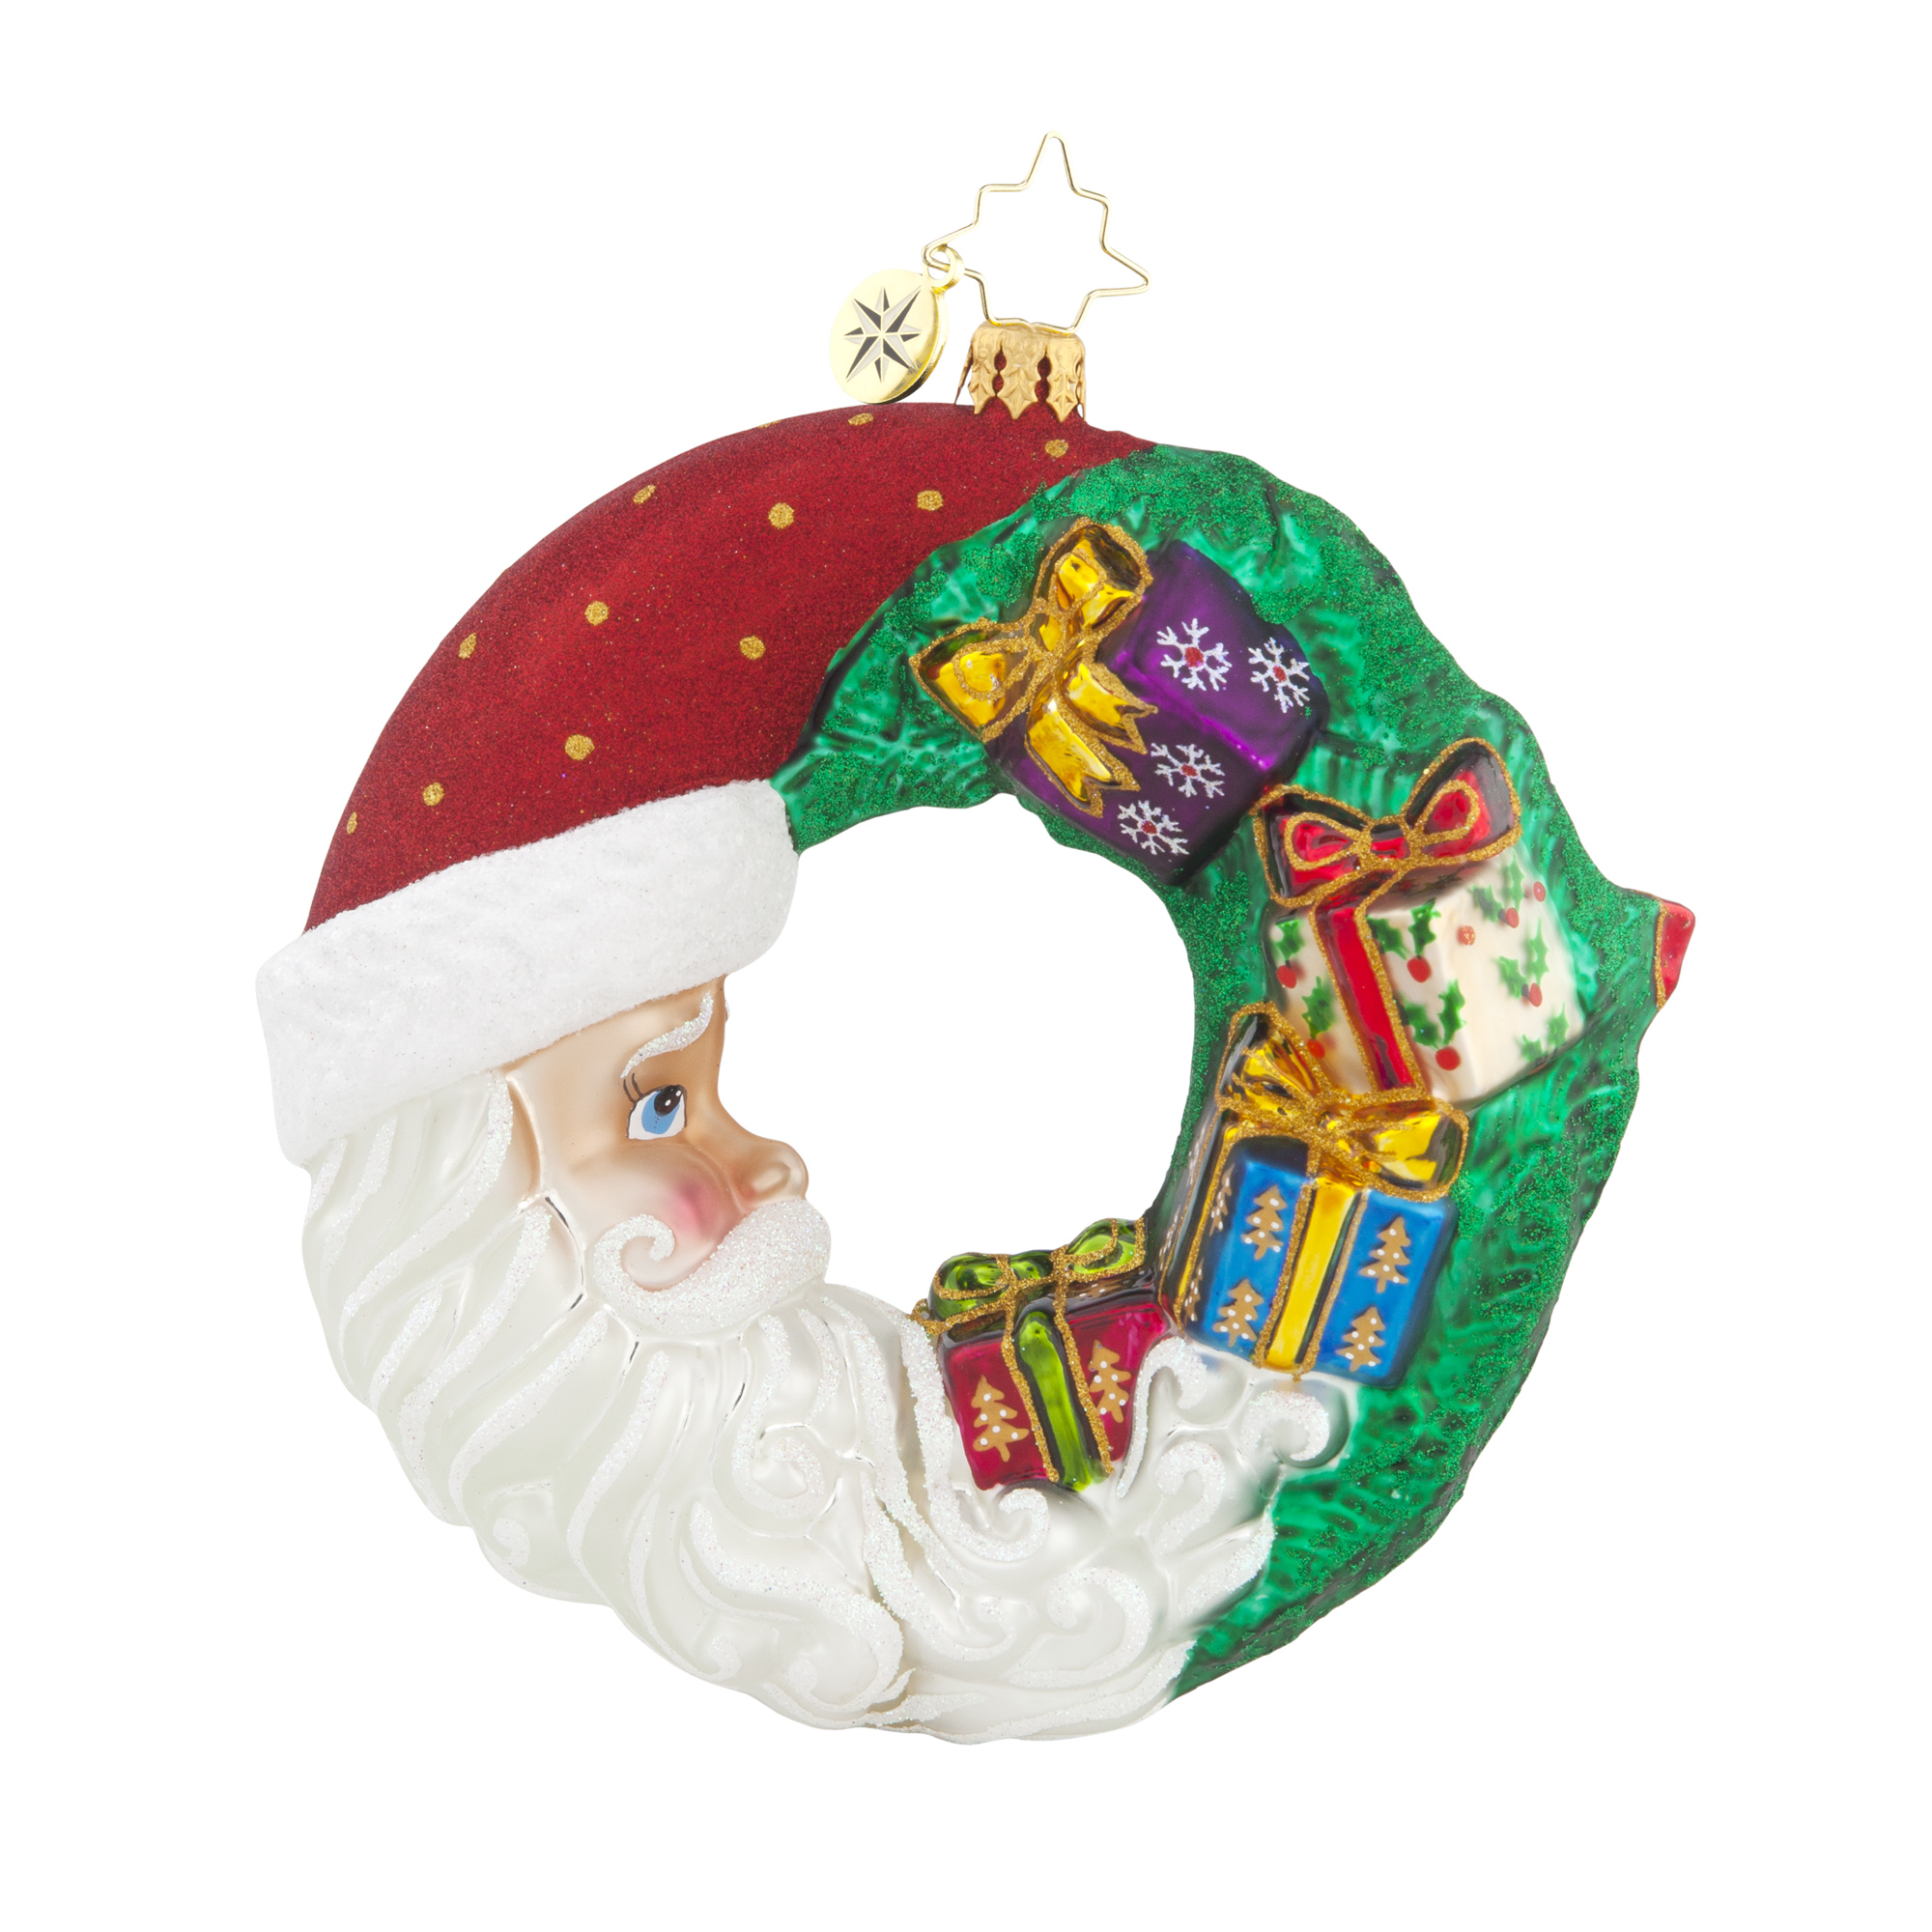 ... CRESCENT CHRISTMAS PRESENTS - CRESCENT SANTA WREATH ORNAMENT - NEW